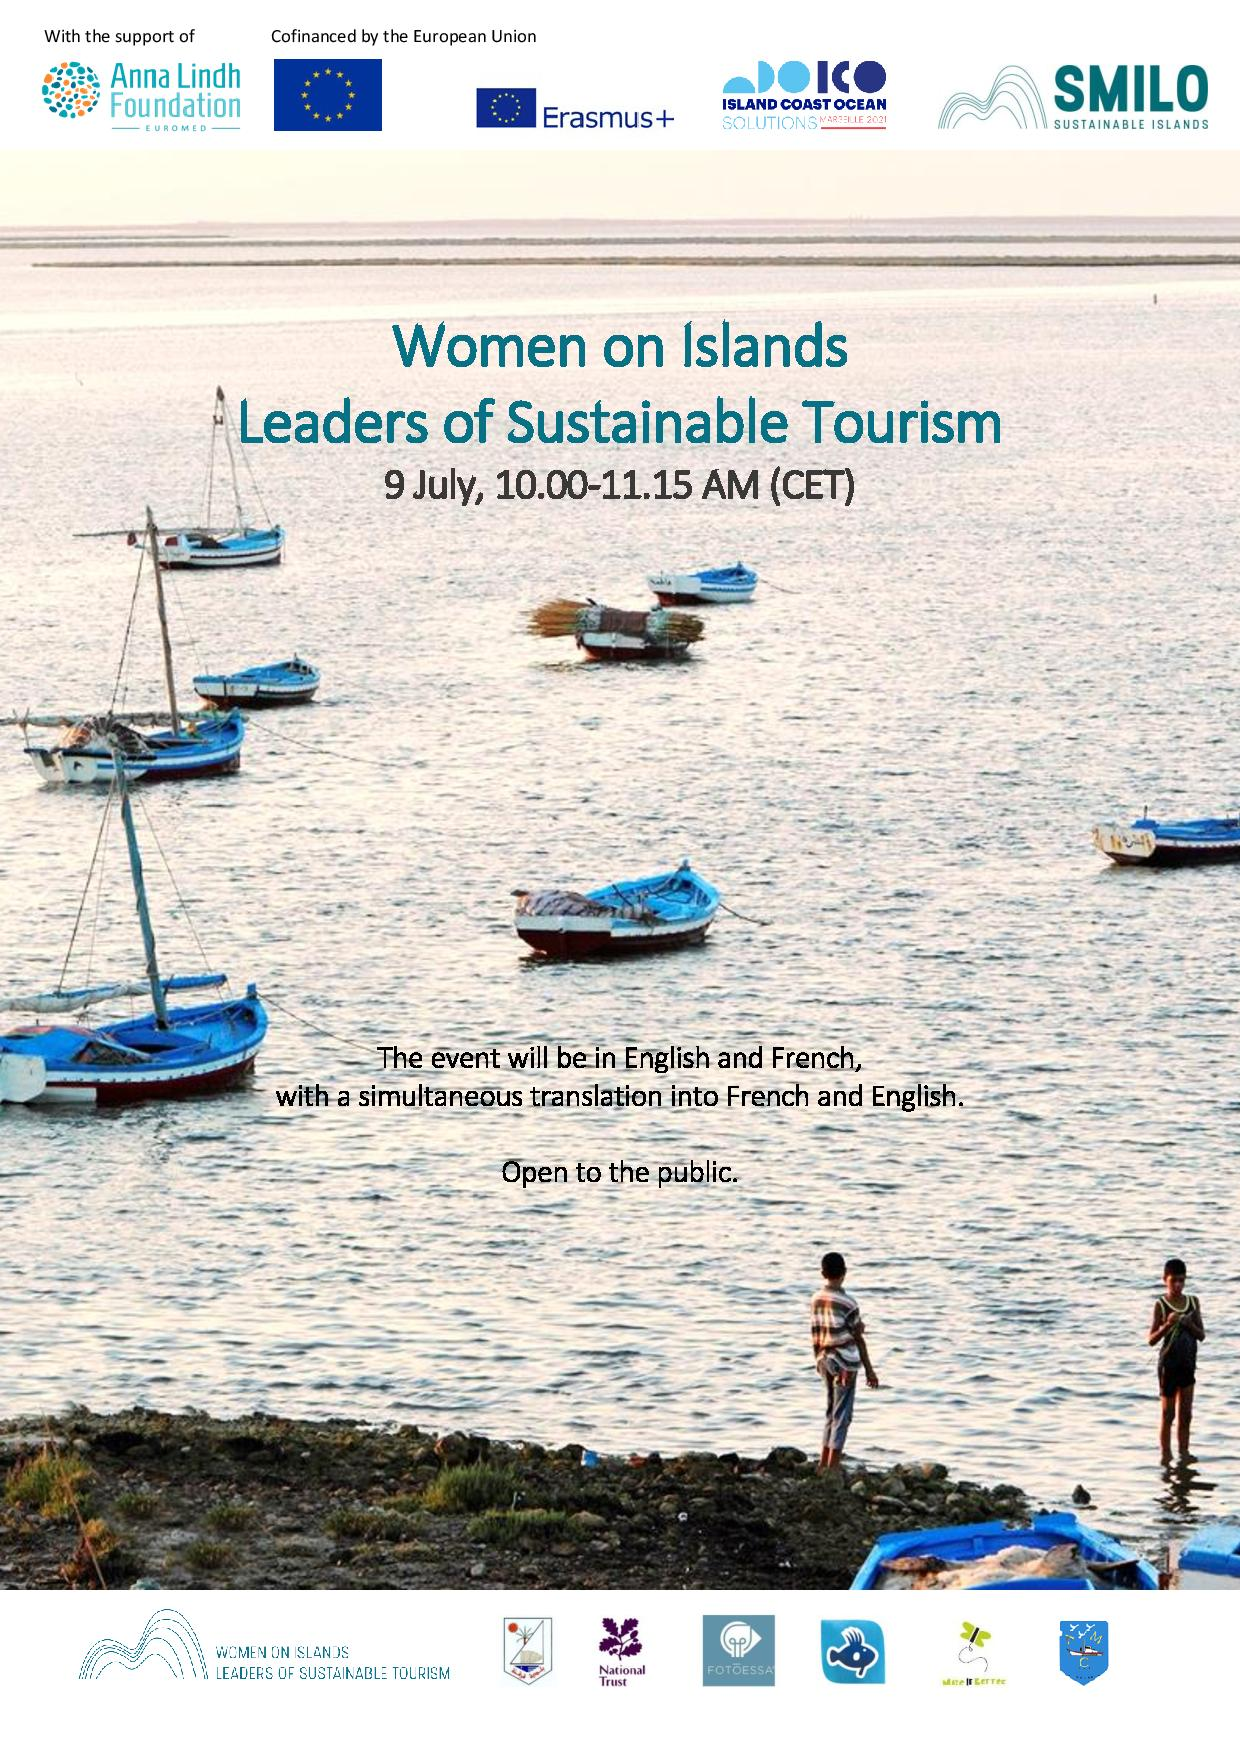 Women on Islands Leaders of Sustainable Tourism